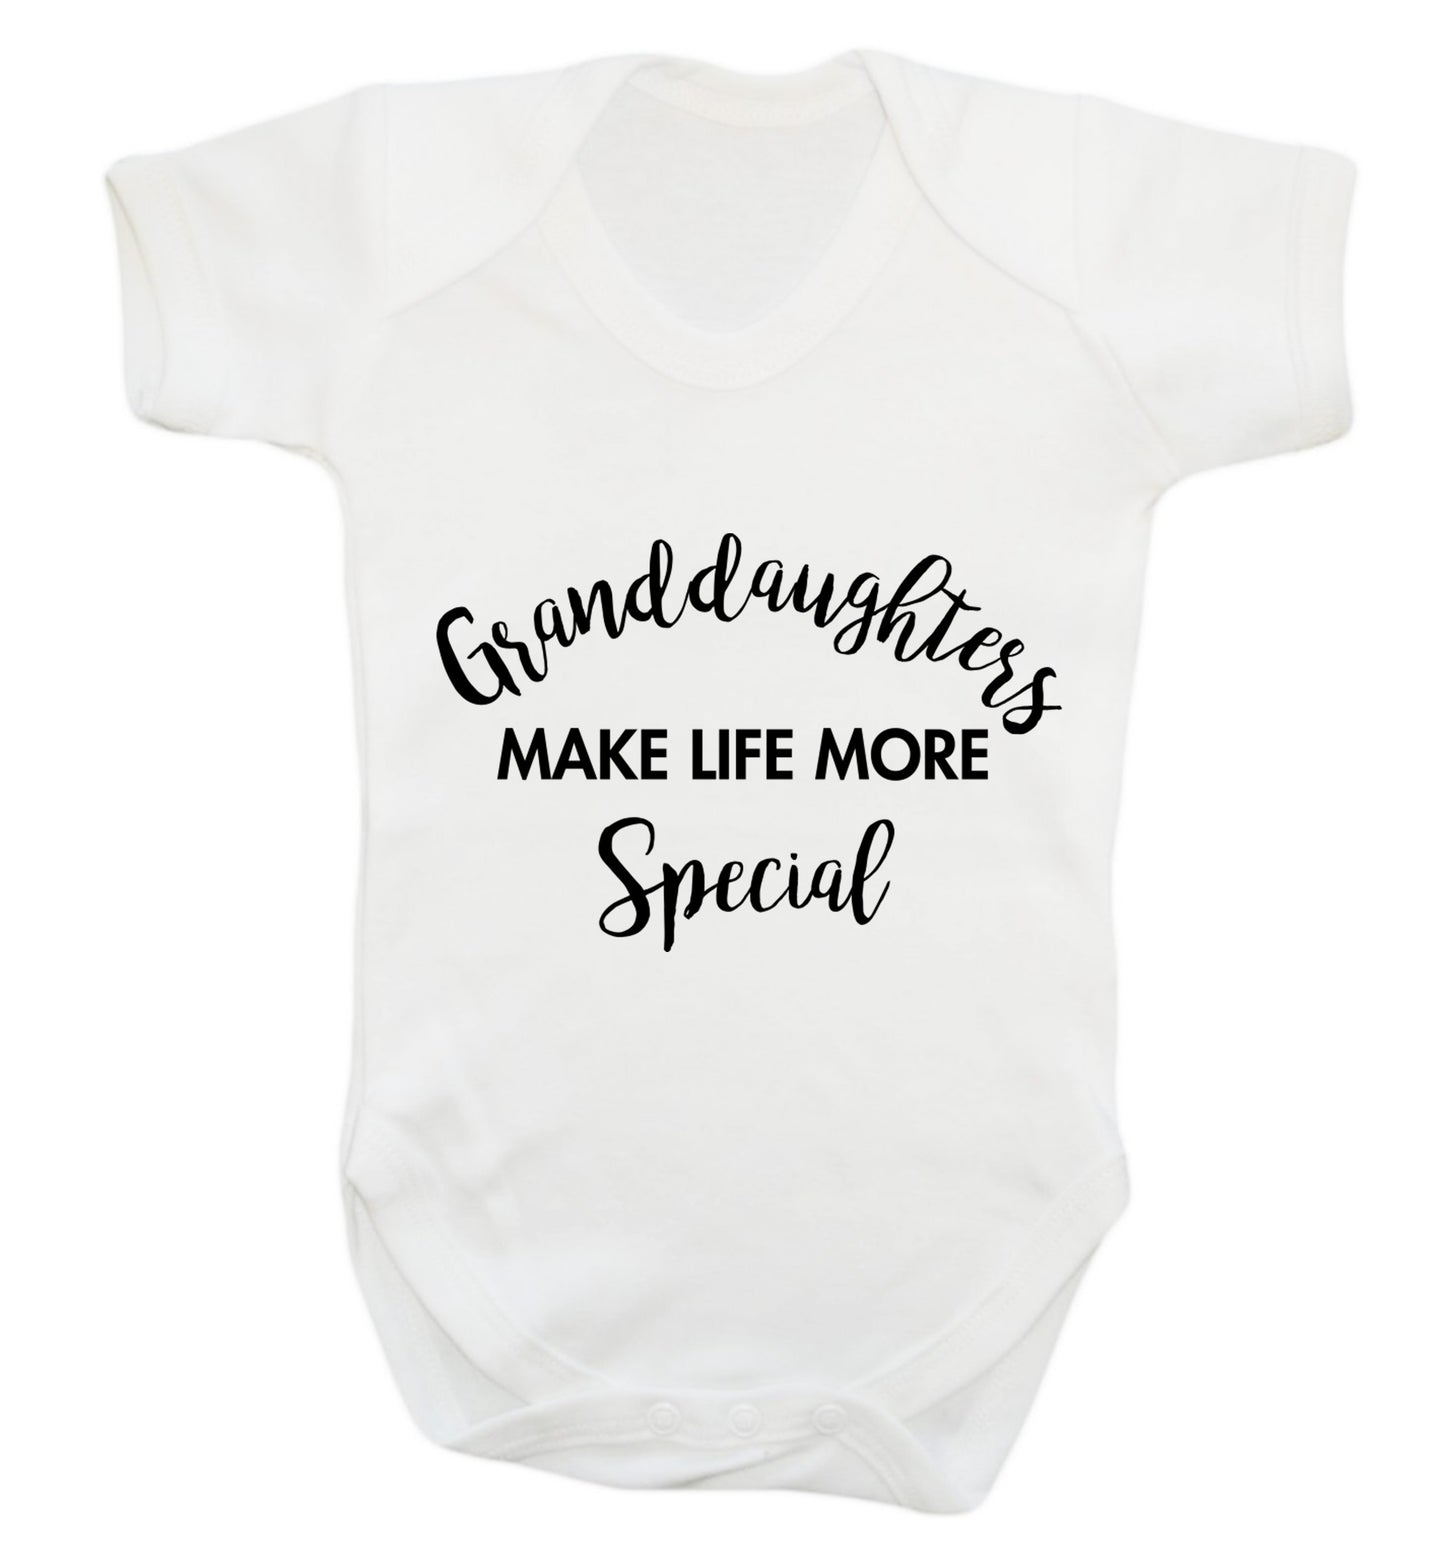 Granddaughters make life more special Baby Vest white 18-24 months